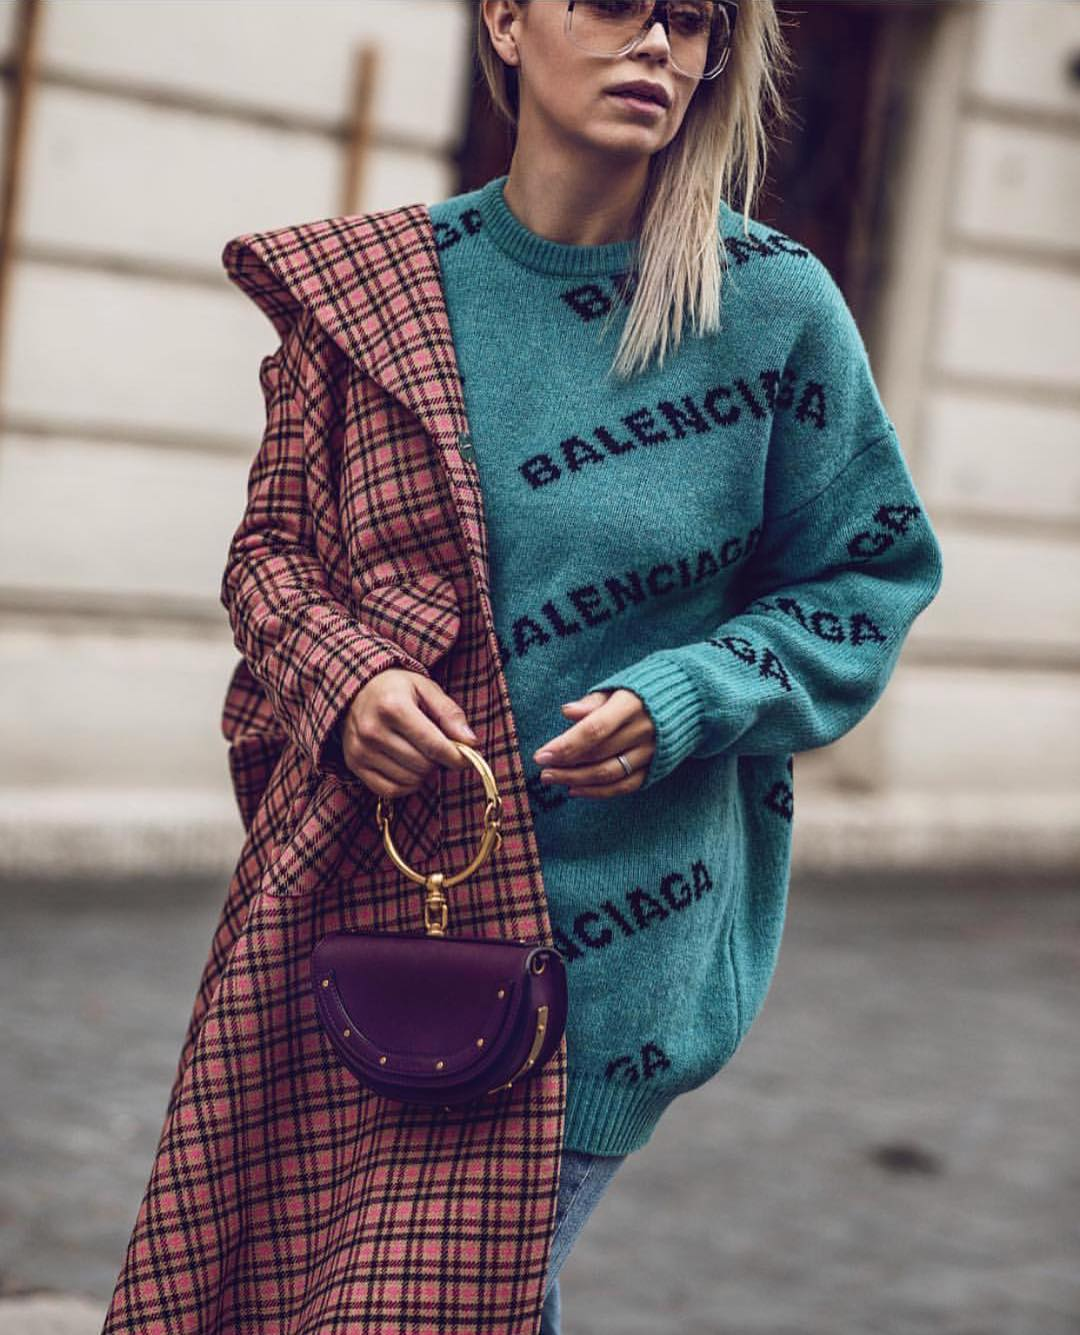 How To Wear Oversized Sweater And Plaid Coat This Fall 2019